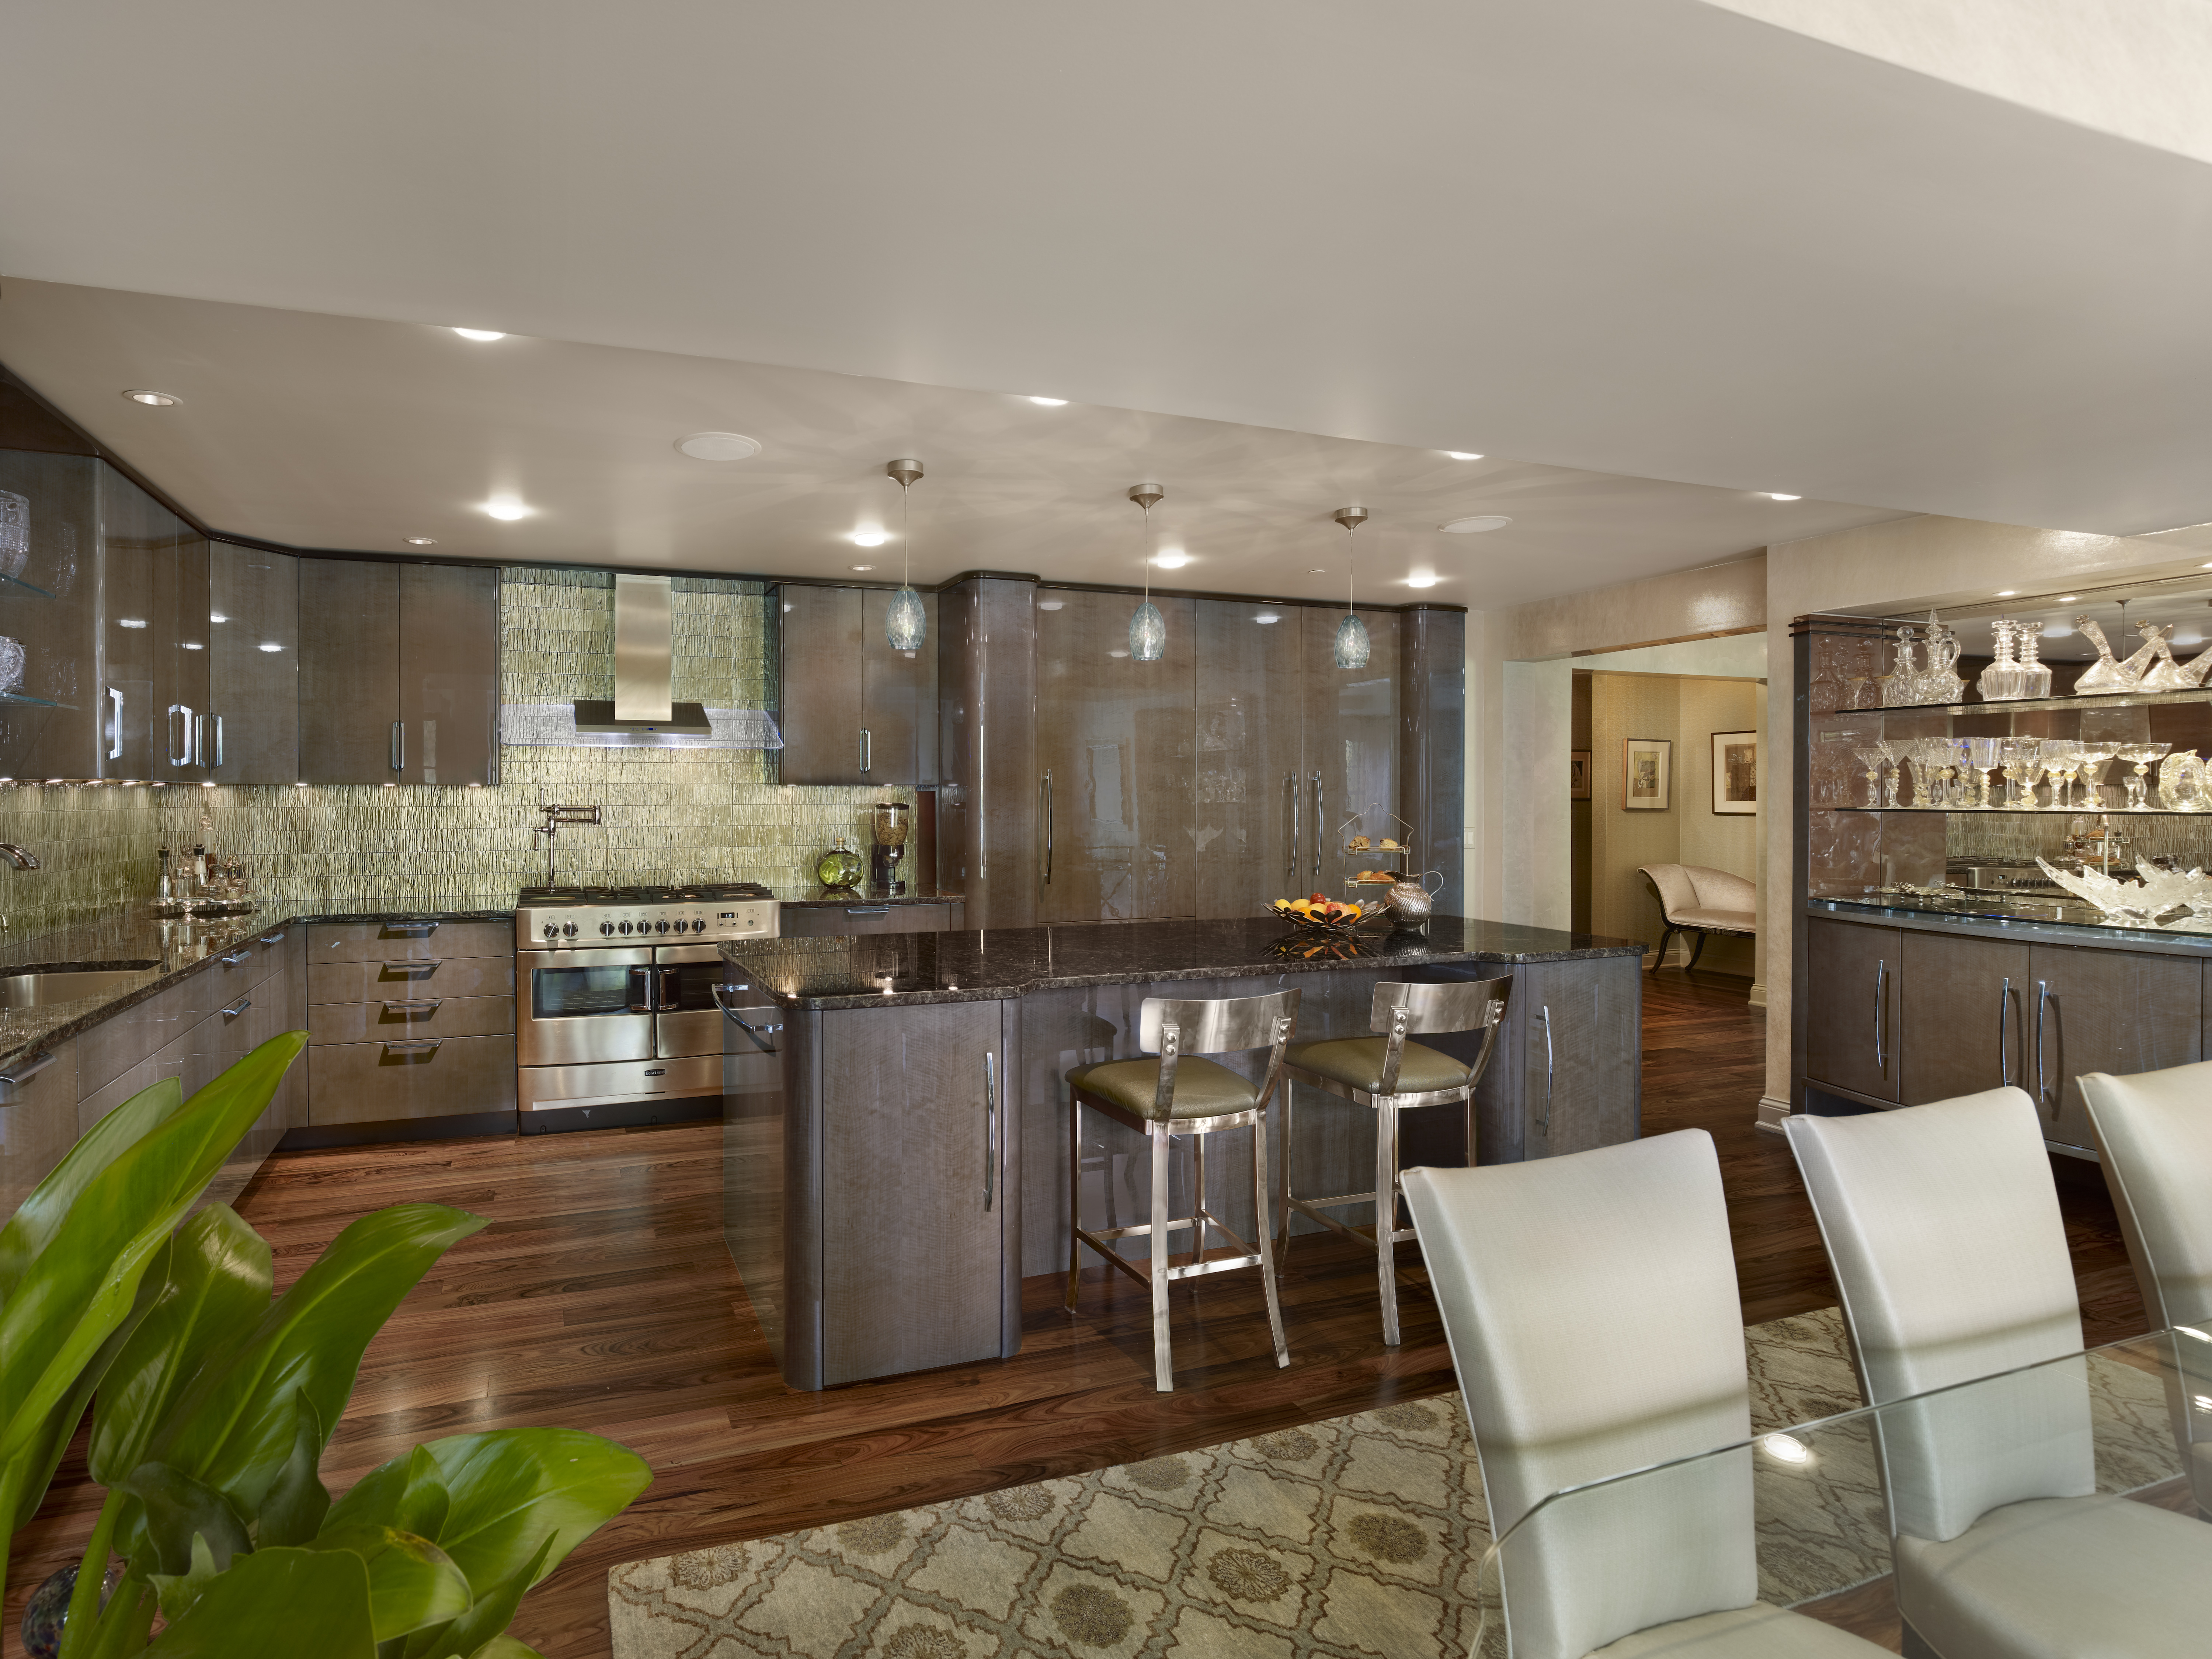 Install Recessed Lighting In A Kitchen: Kitchen & Bath Business